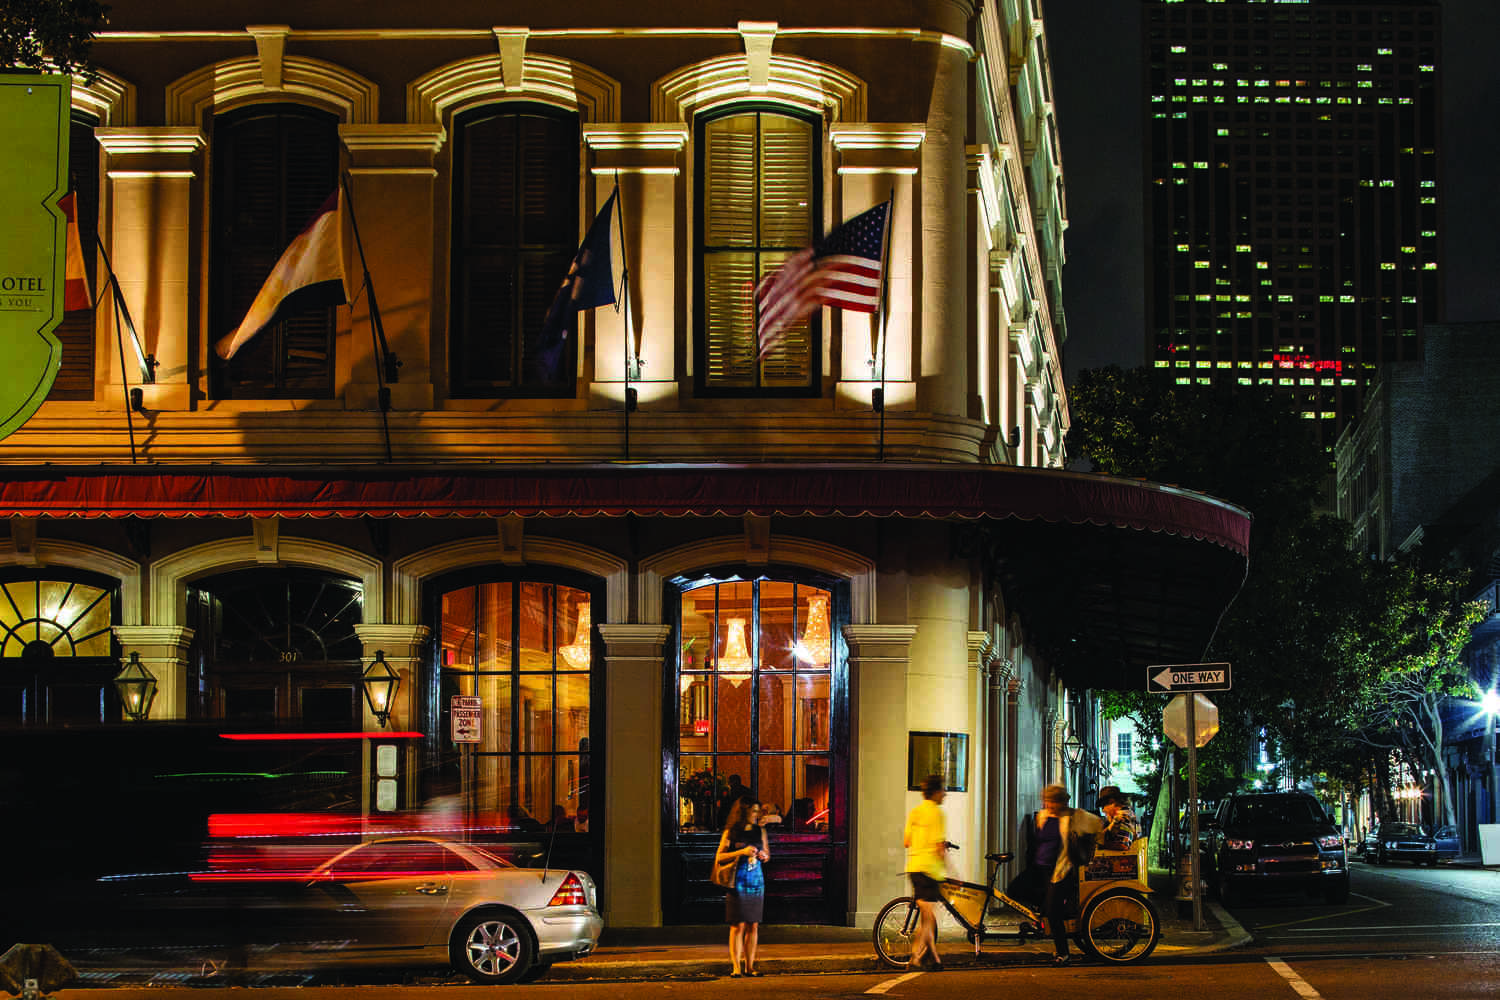 The Best Restaurants In New Orleans Central Business District